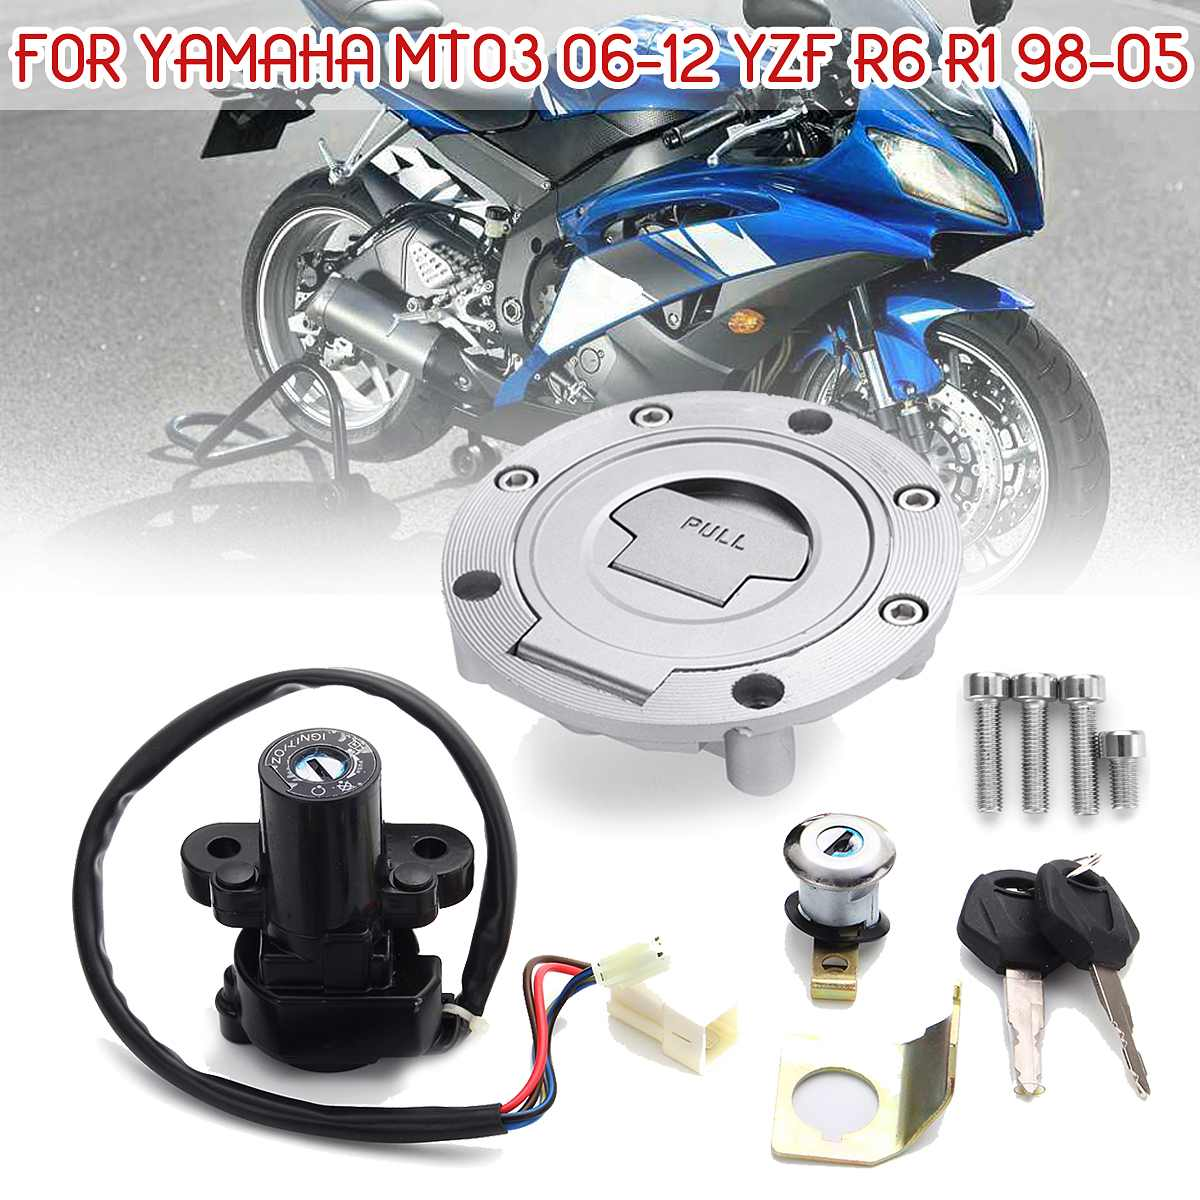 Replacement Igni Lock Set with Key For Yamaha YZF 1000 R Thunderace 97-98